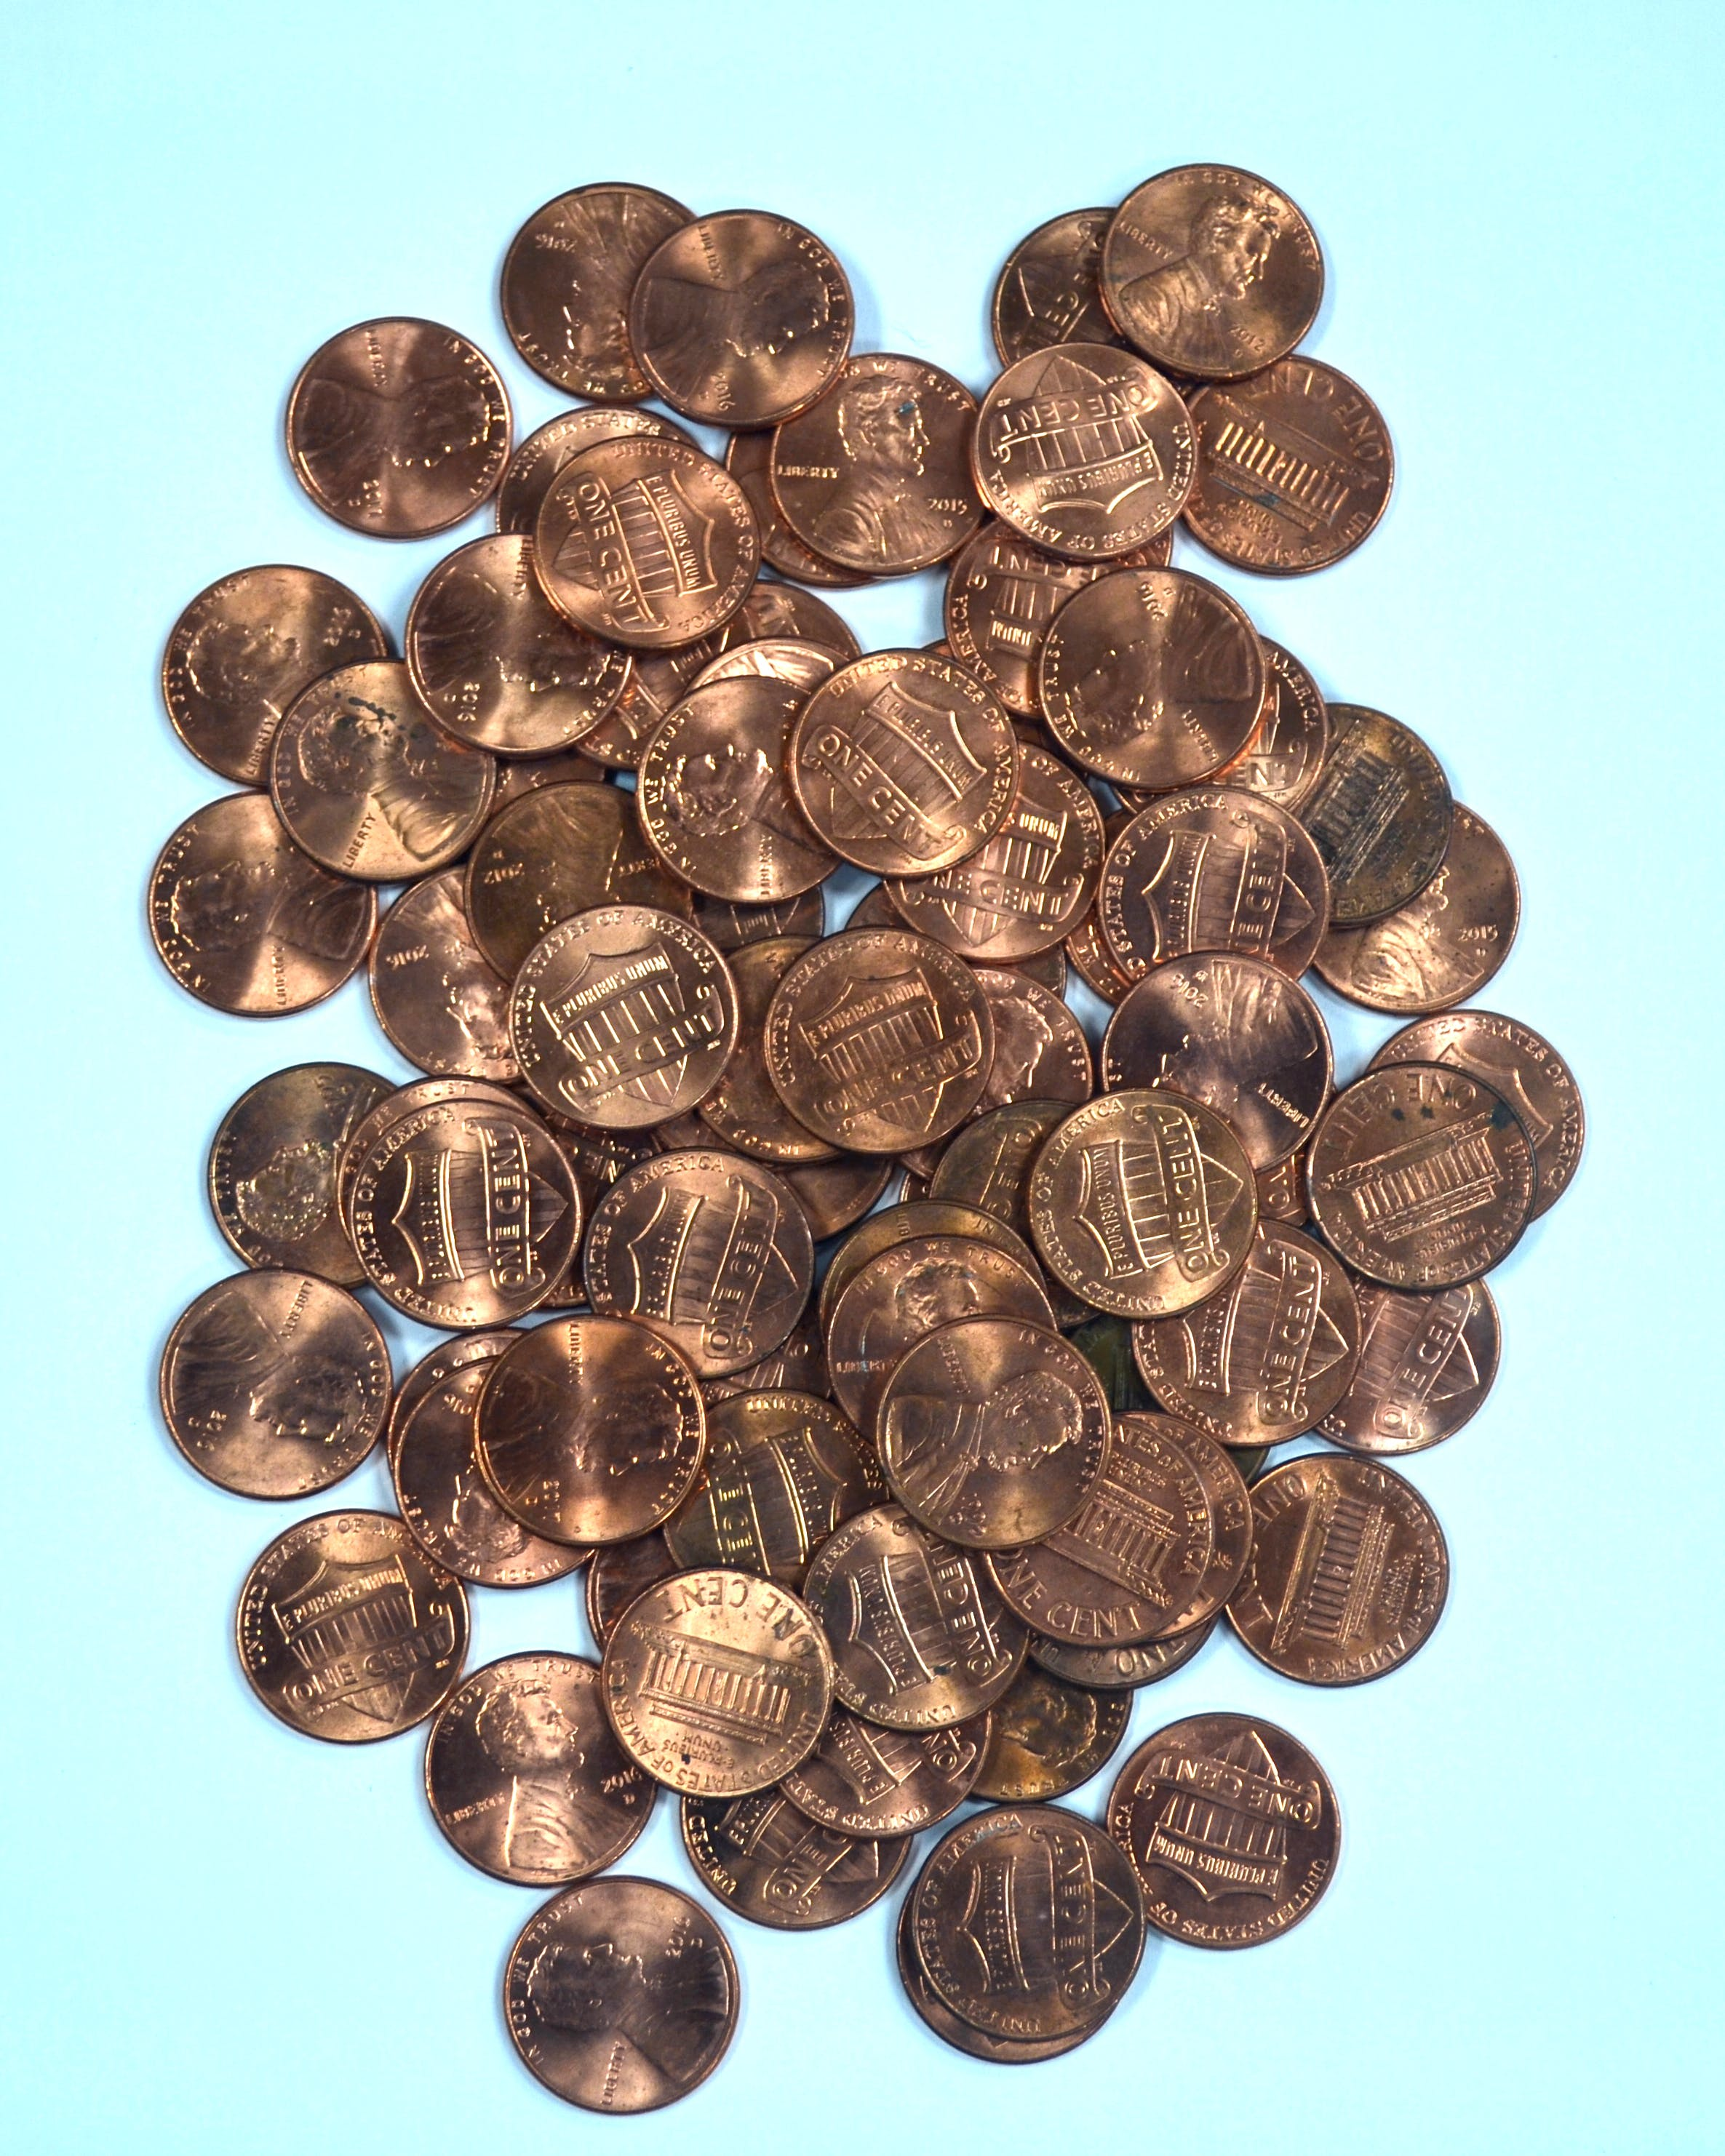 Free stock photo of coins, money, penny